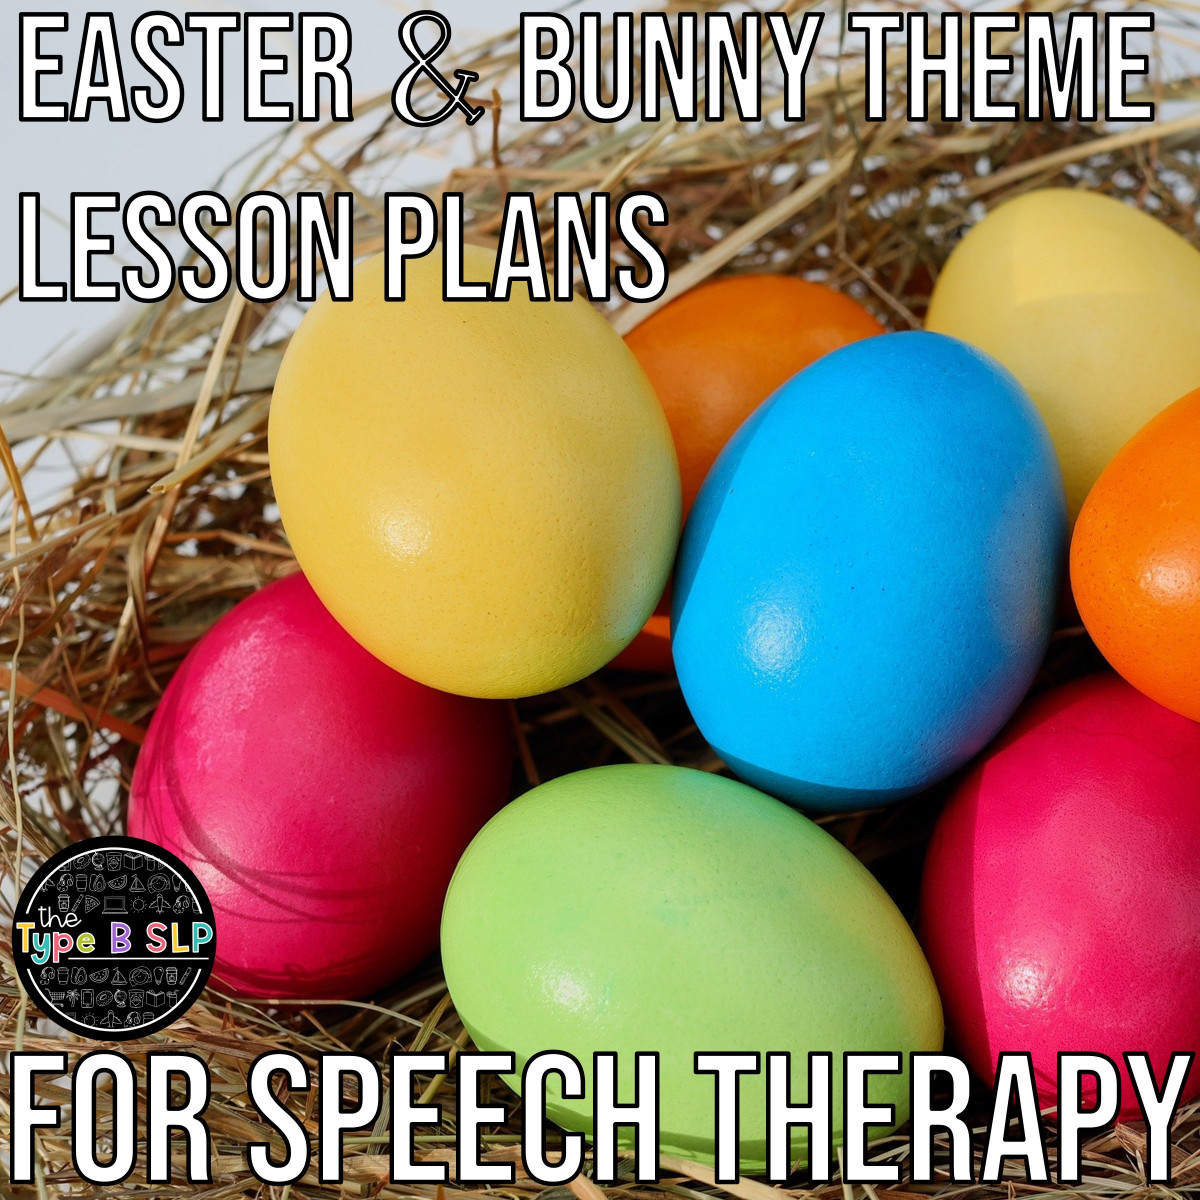 Easter & Bunny Theme Lesson Plans for Speech Therapy